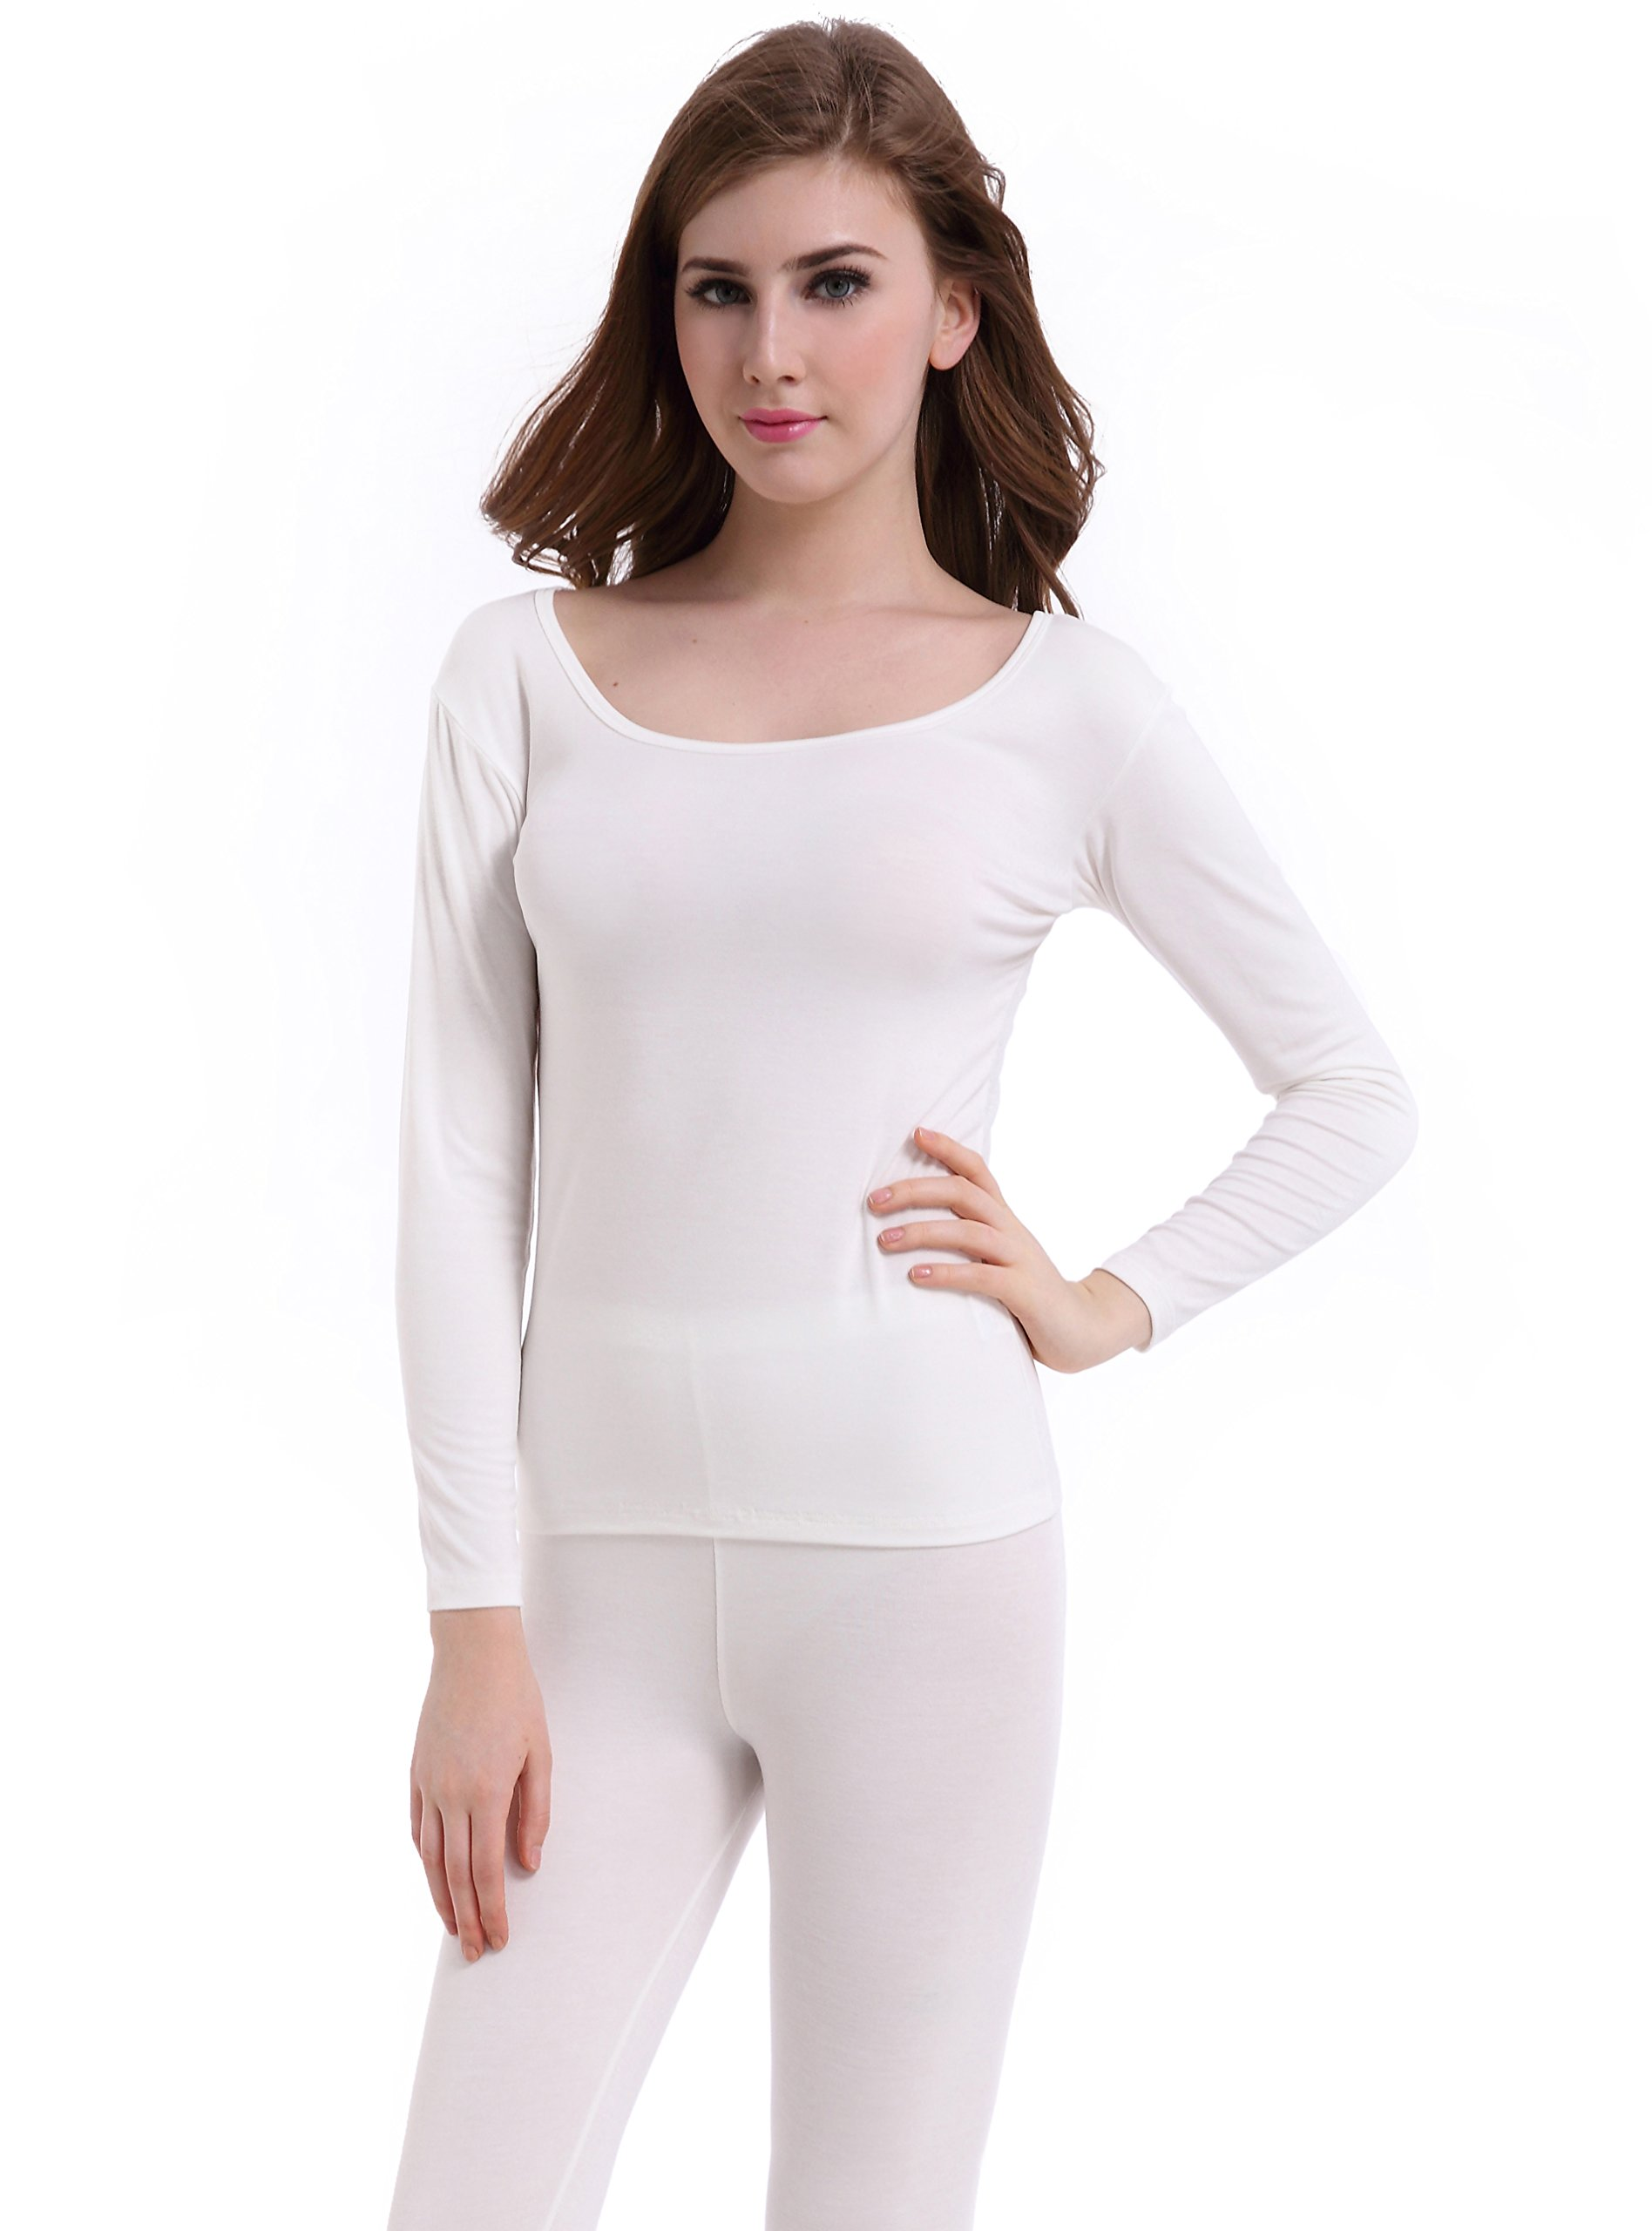 Thermal Underwear Women Long Base Layer Winter -Ultra Thin Set Bottom Pajama